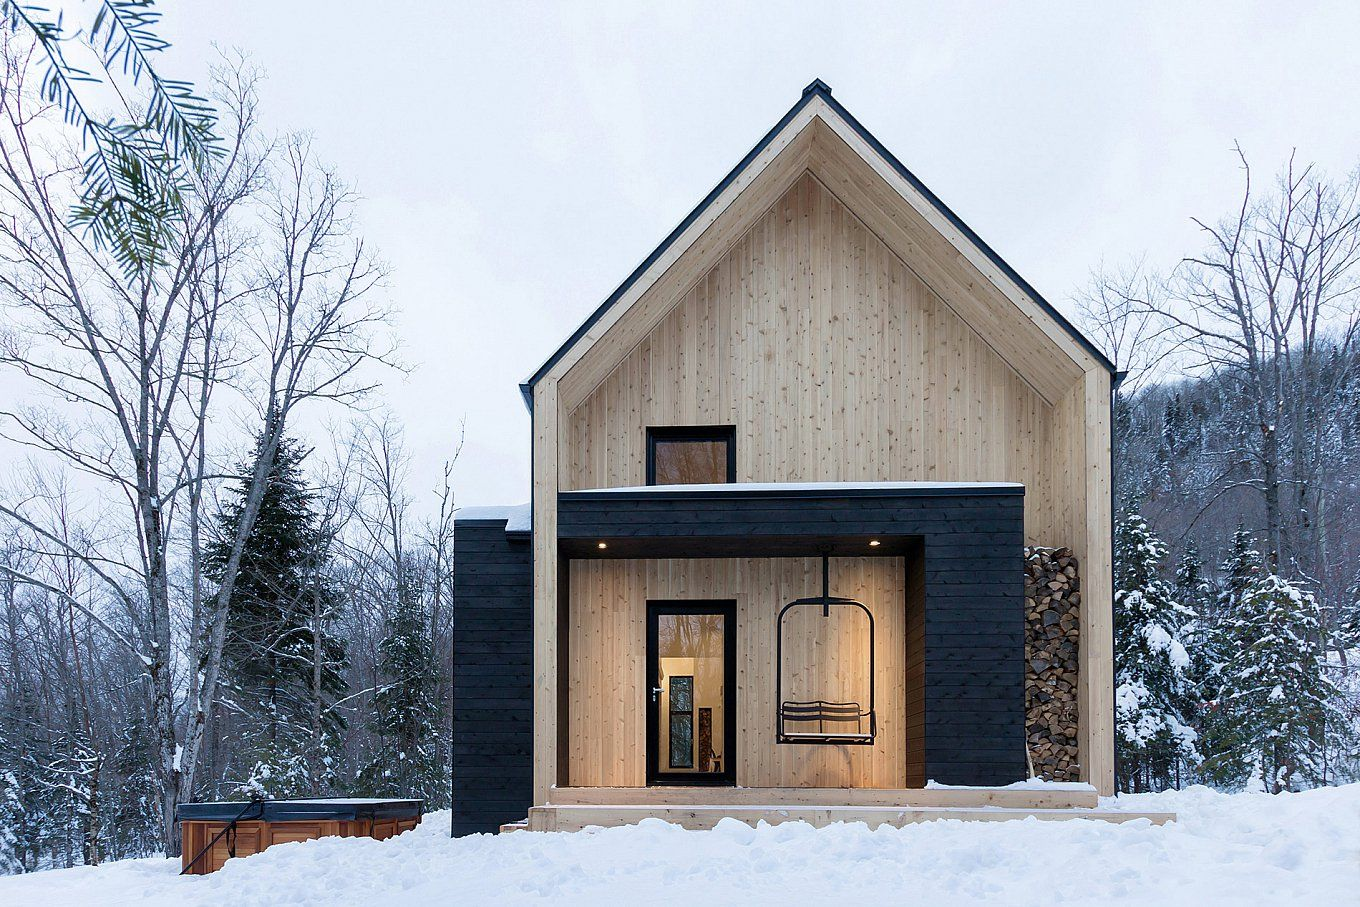 Scandinavian Architecture In Canadian Forest Building A Container Home Architecture Scandinavian Architecture